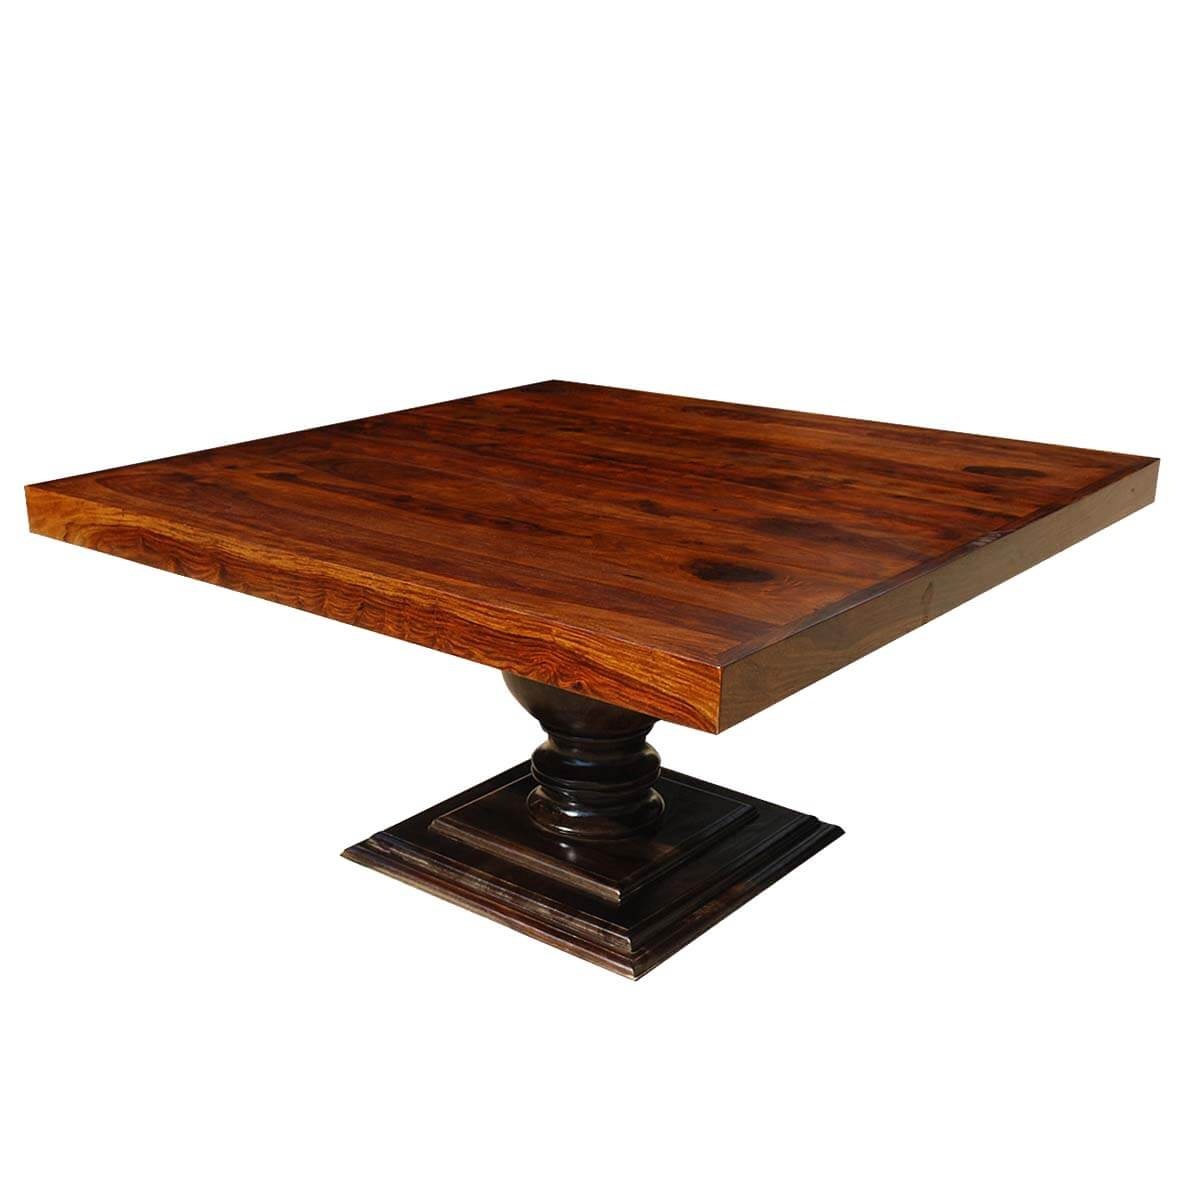 Pedestal Dining Table Solid Wood Modern Rustic Block Pedestal Square Dining Table